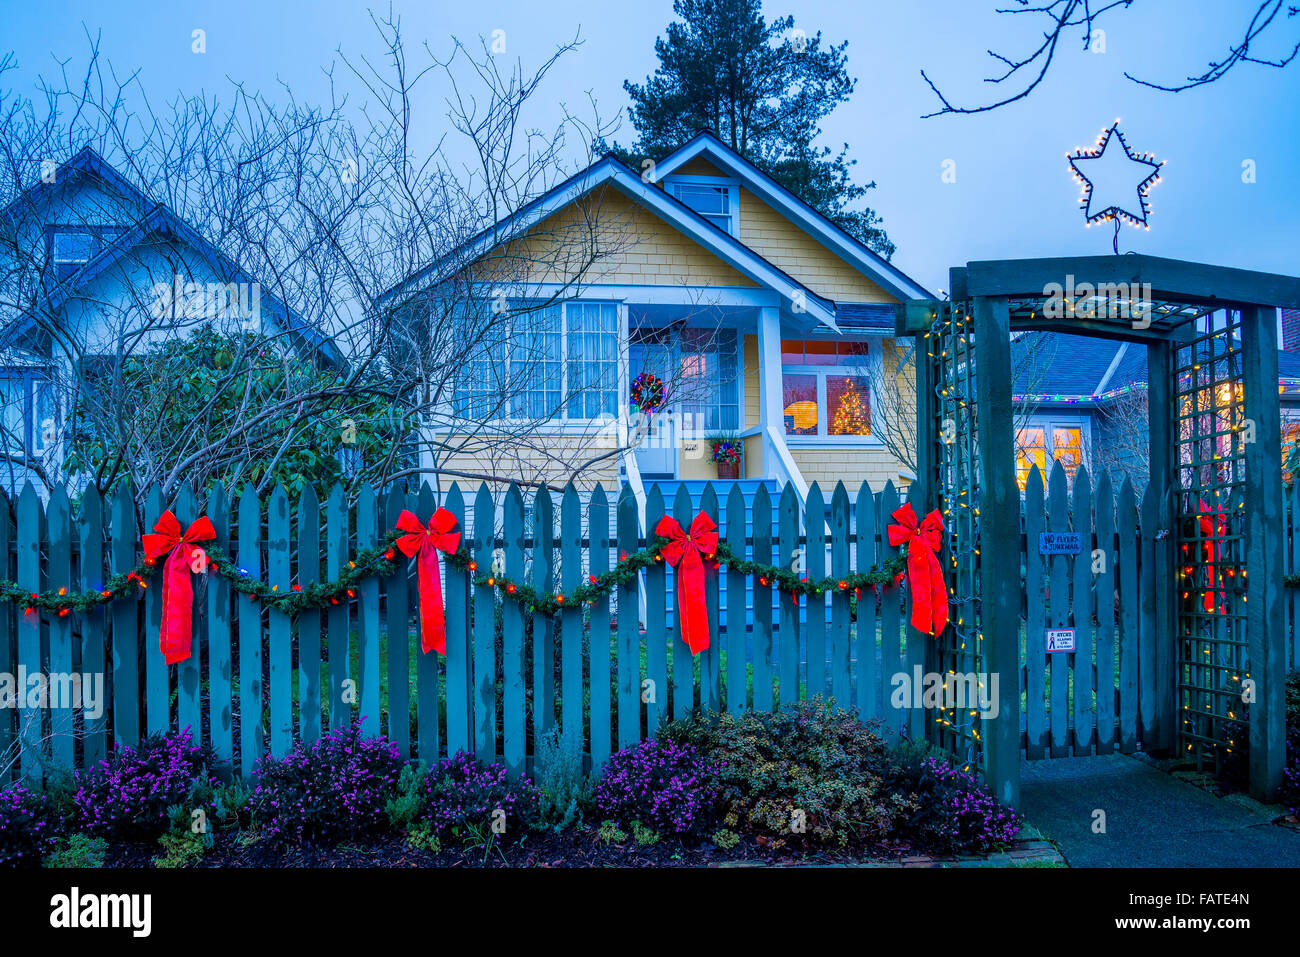 picket fence decorated for Christmas - Stock Image